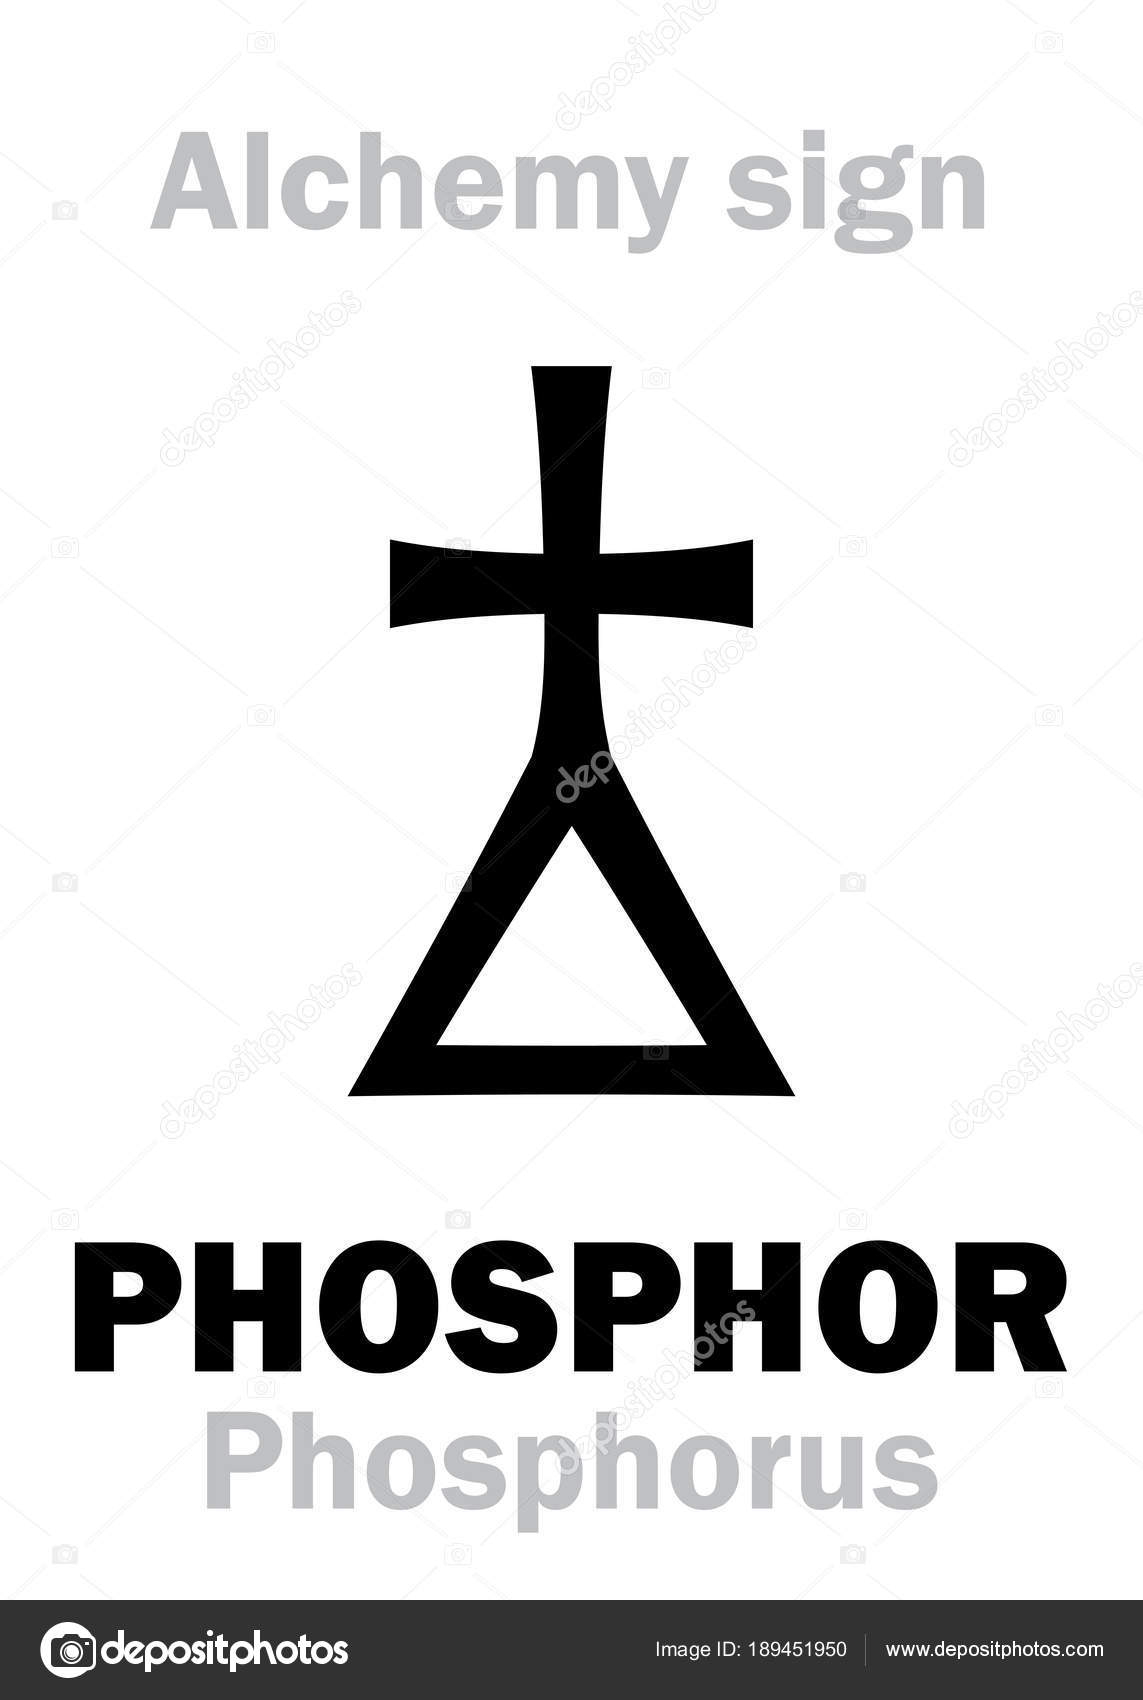 Alchemy Phosphor Phosphorus Stock Vector Photon 189451950